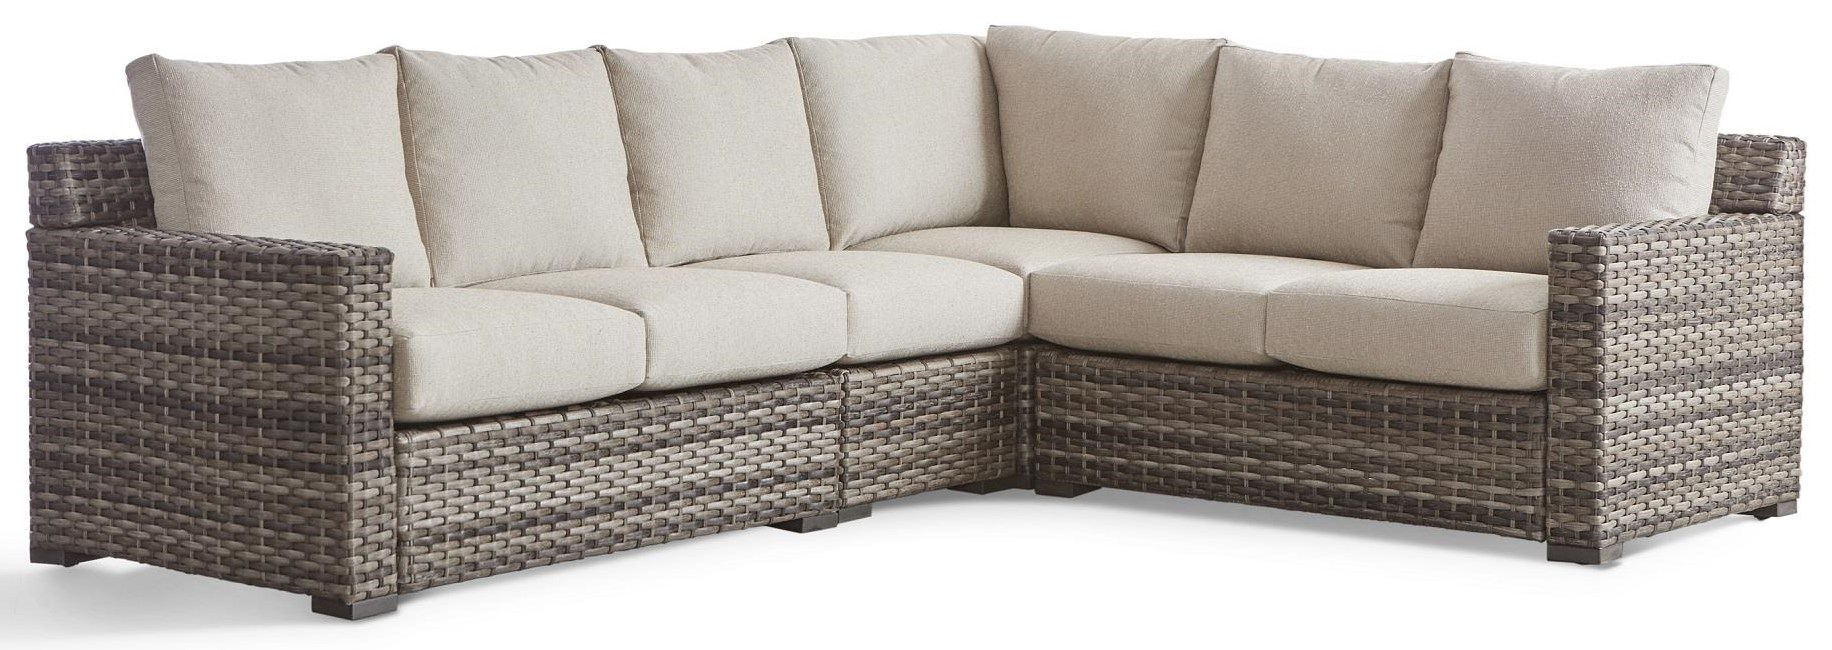 New Java Outdoor Sectional by South Sea Rattan & Wicker at Dream Home Interiors